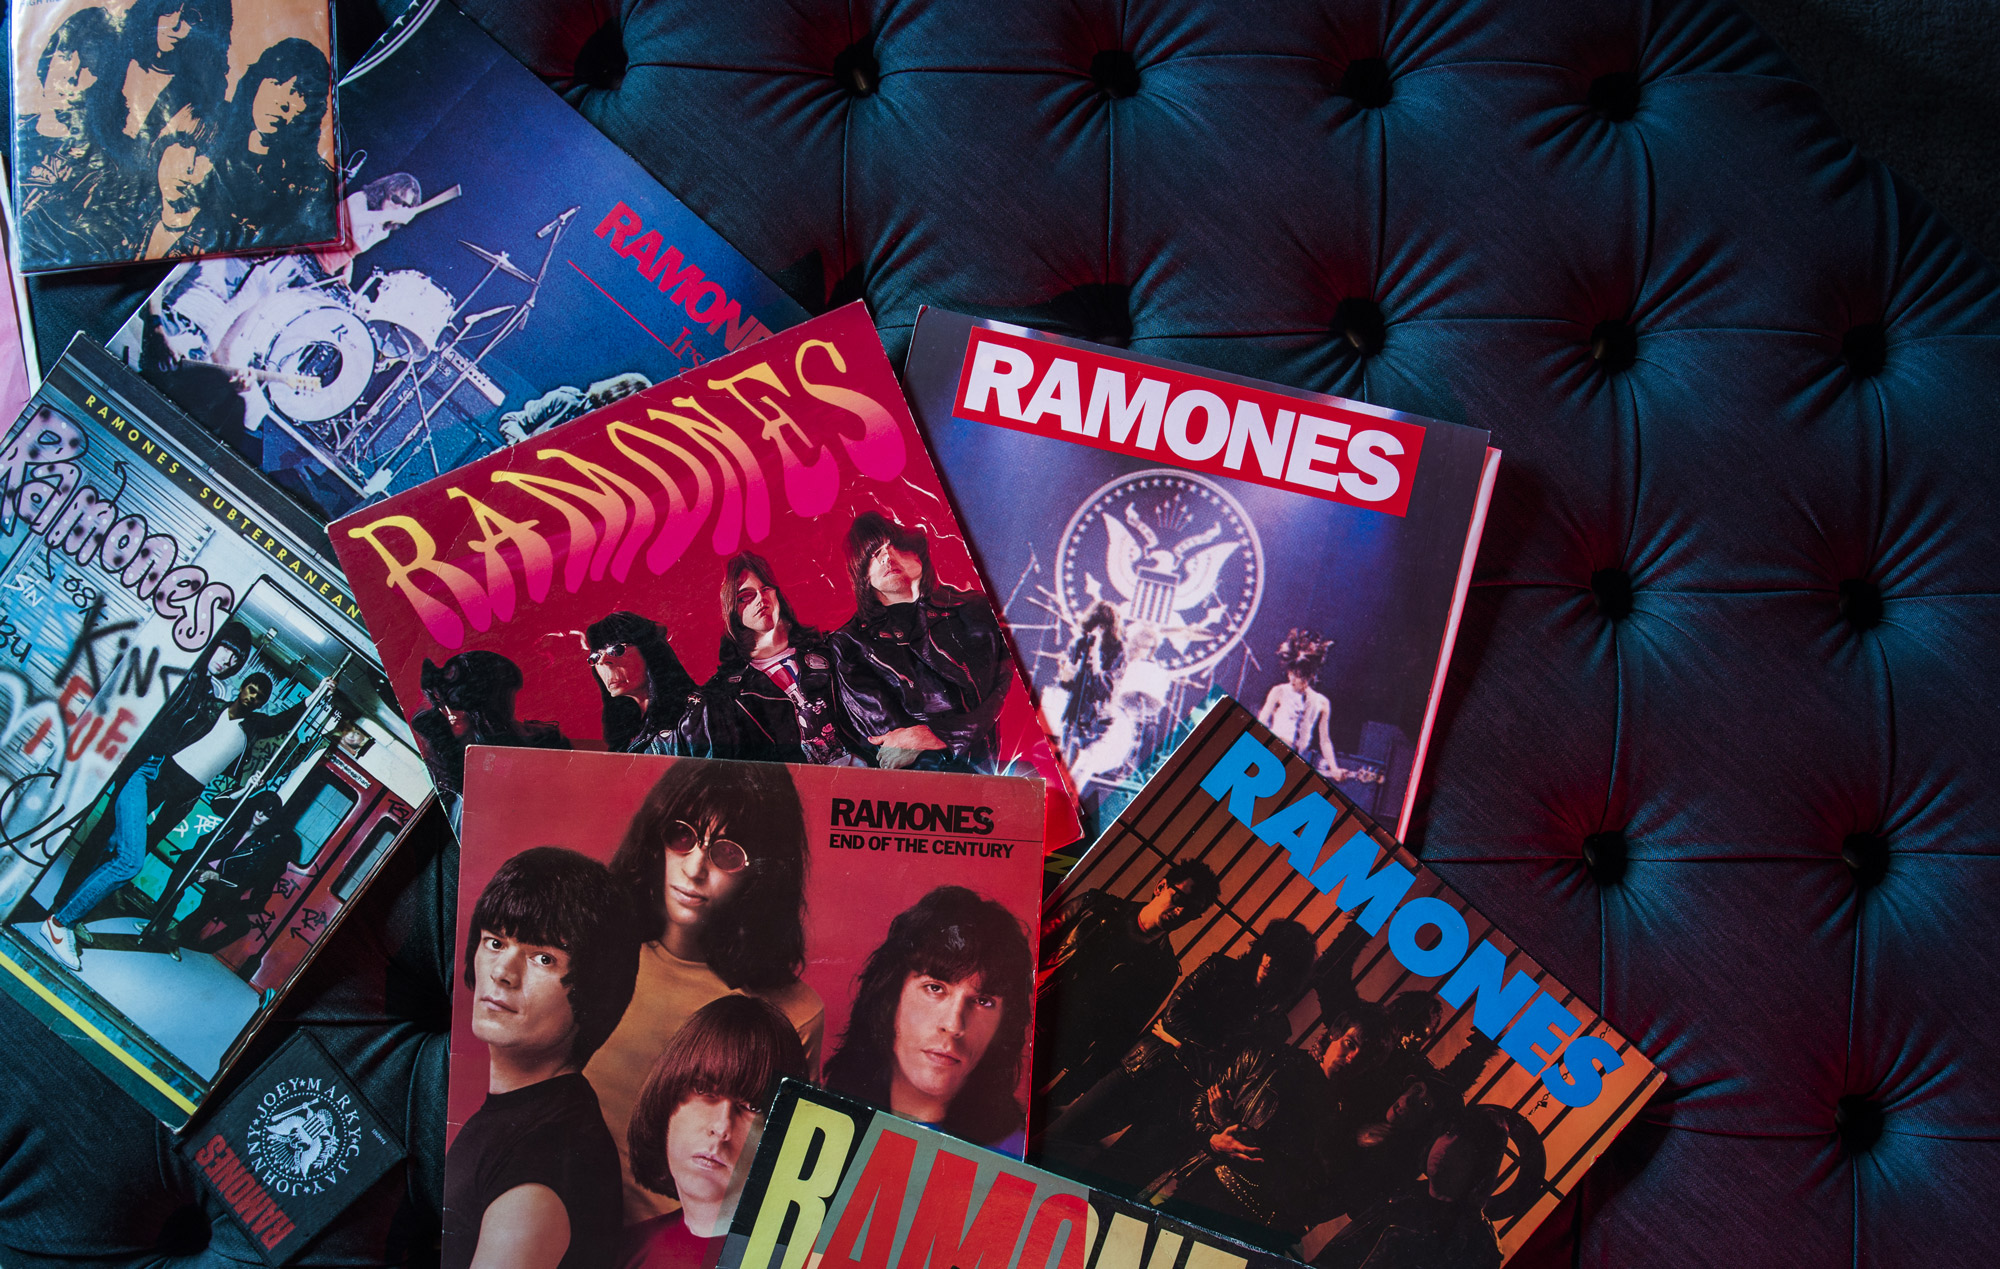 bertolive Ramones vinyl record collection